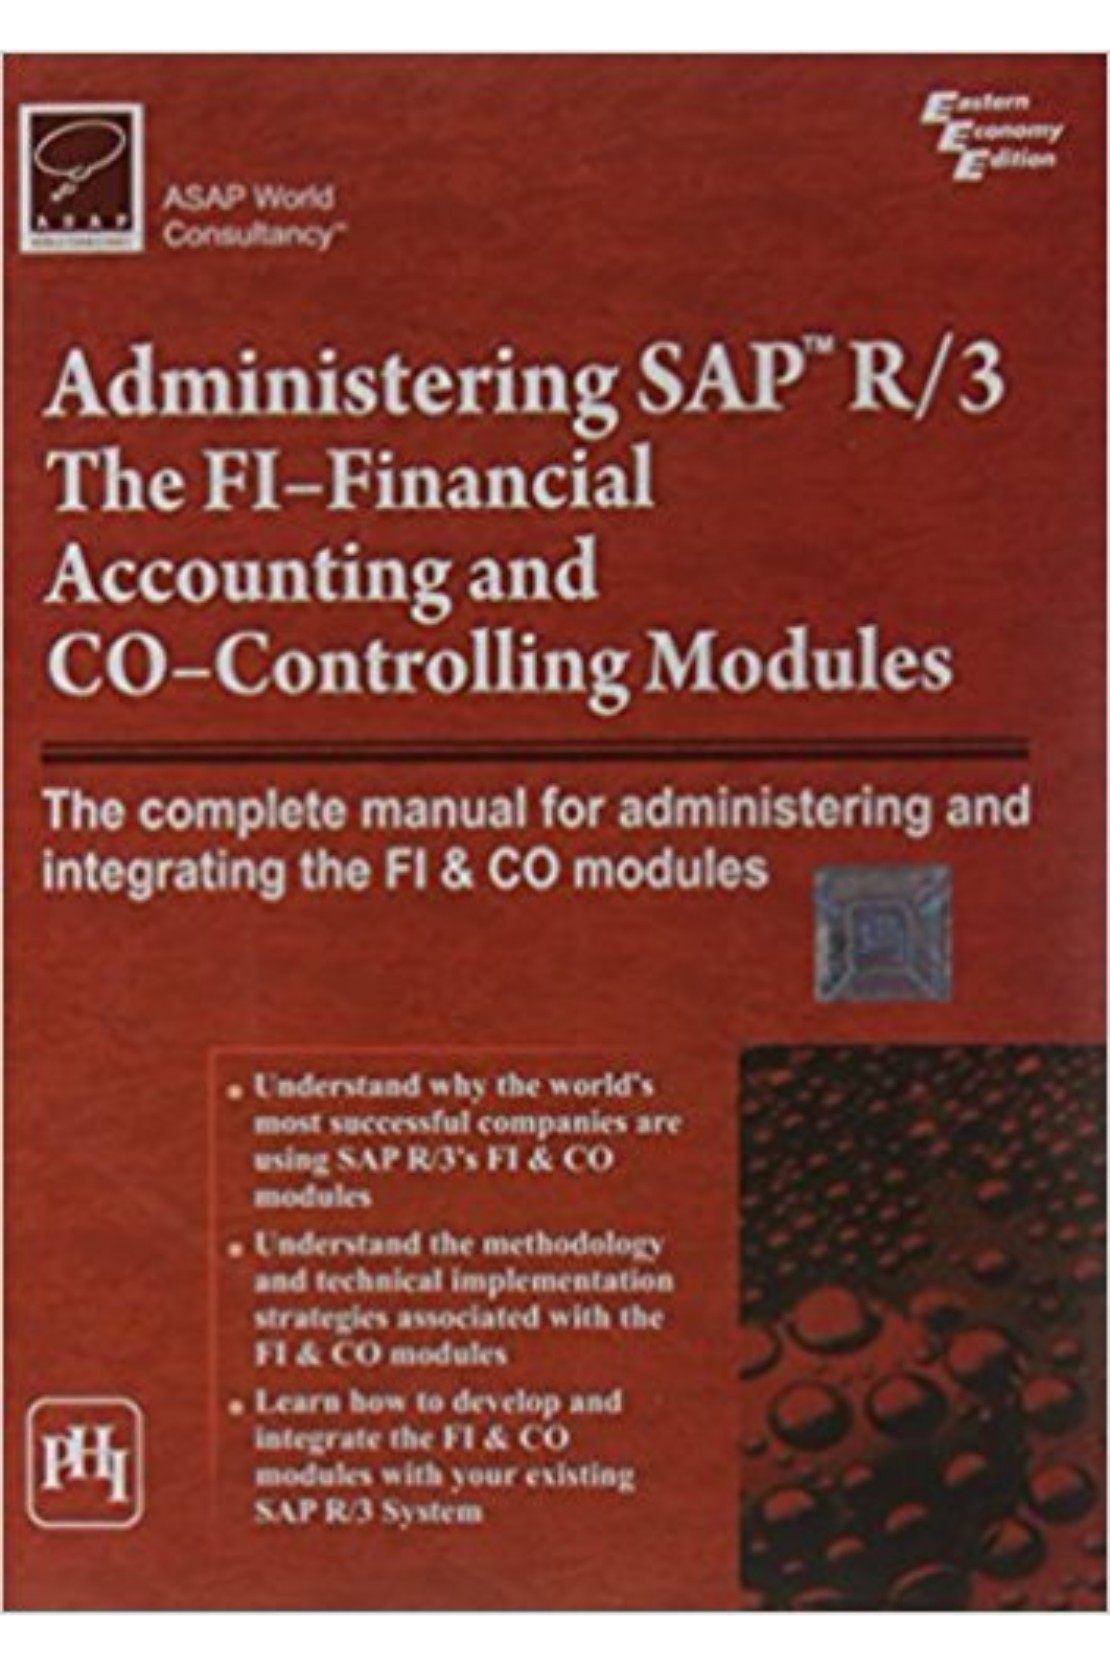 Administering Sap R/3 The Fi-Financial Accounting And Co-Controlling Modules  BooksInn